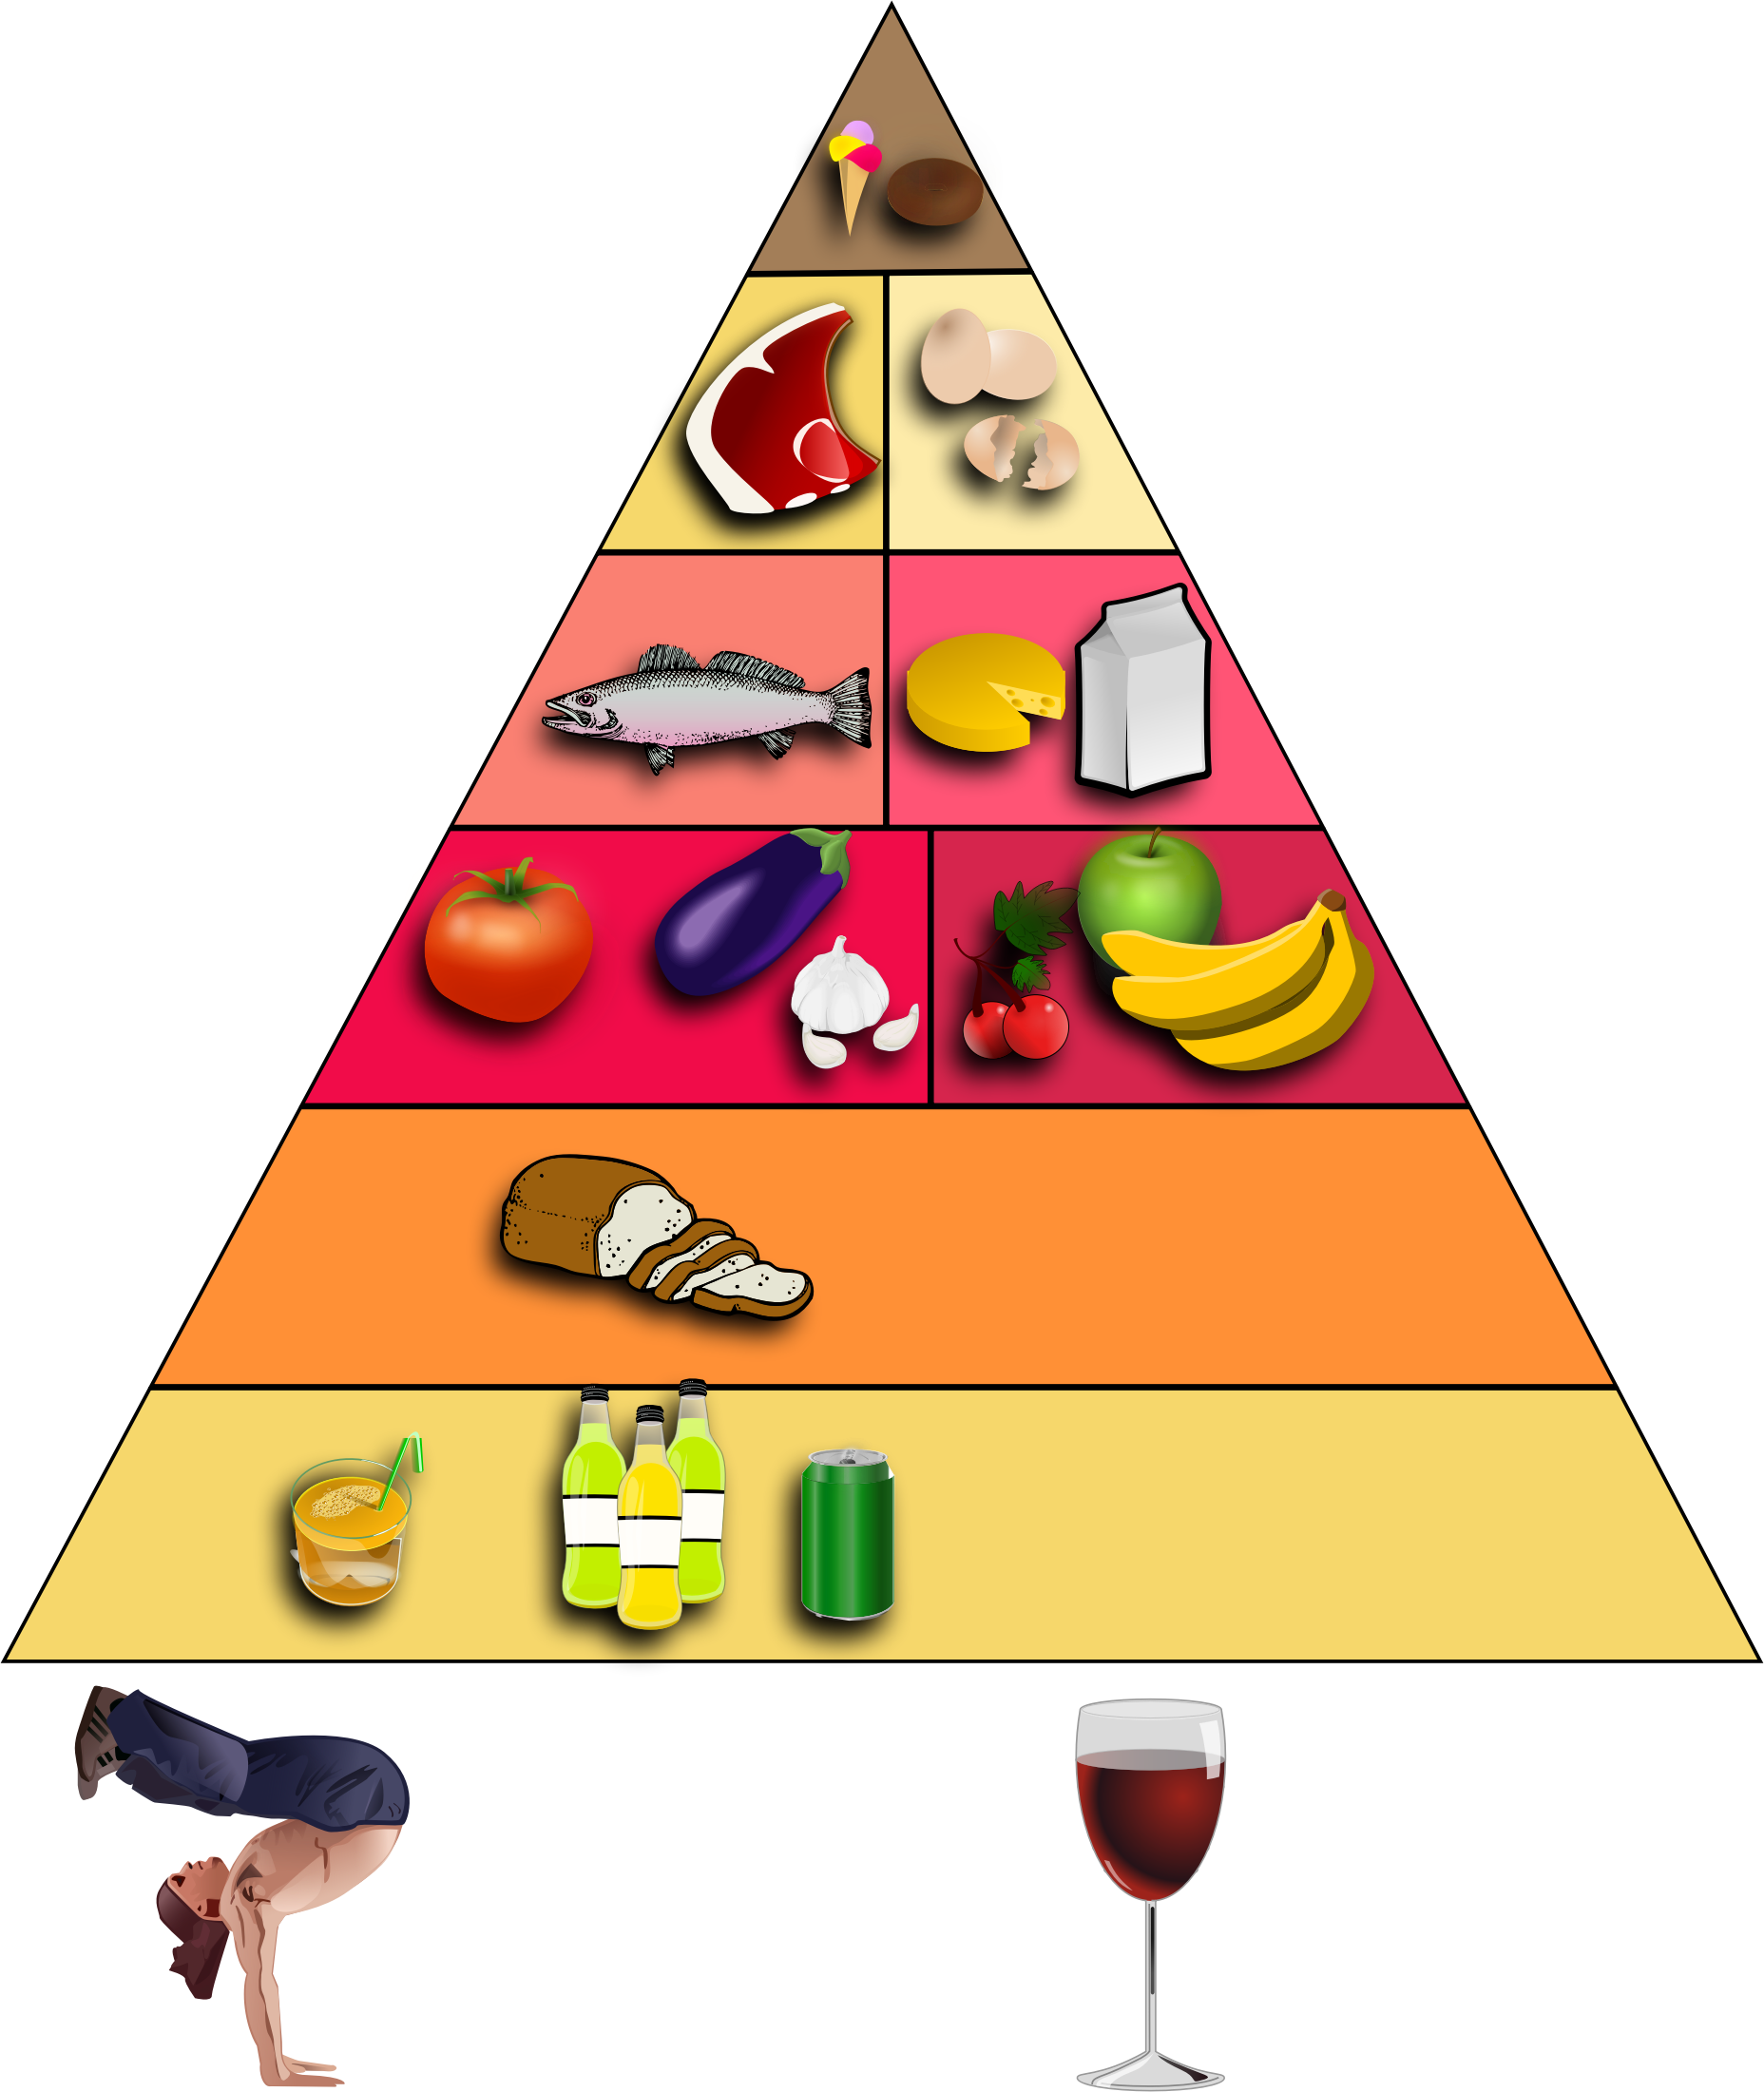 Food Pyramid No Text by GDJ